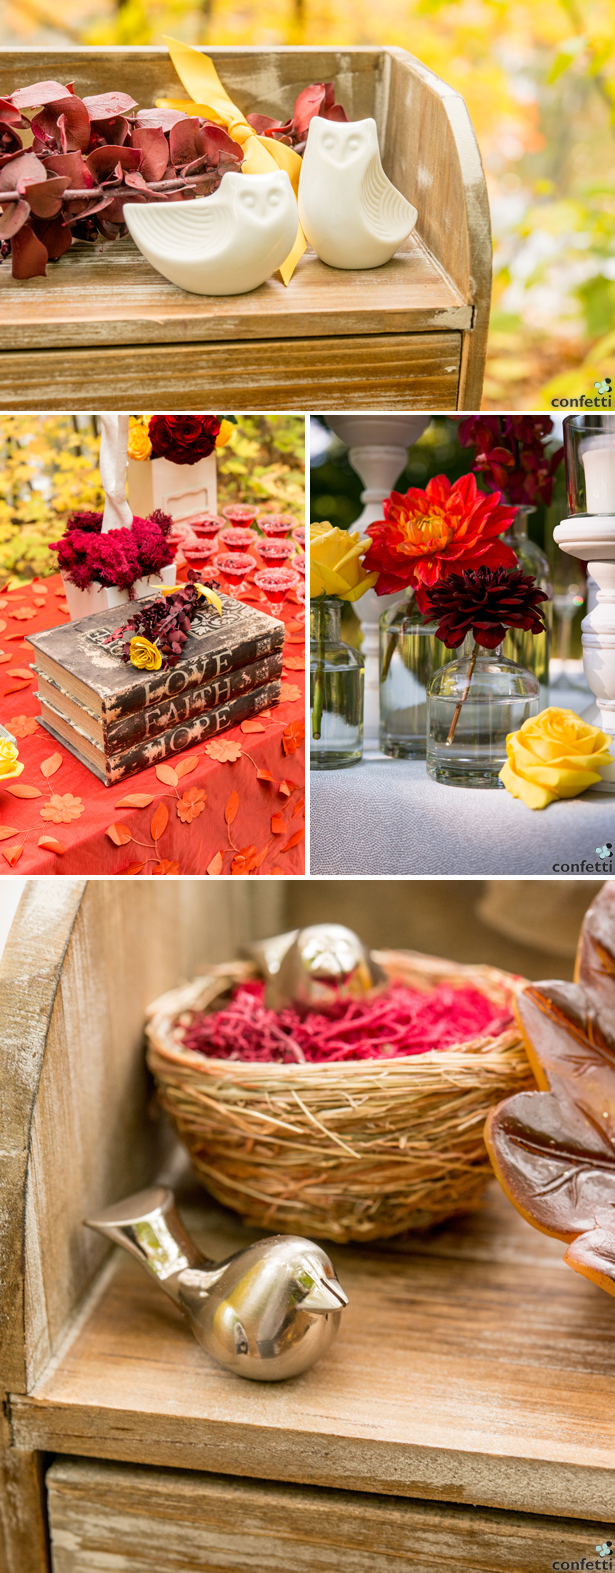 Autumn Wedding Decorations | Confetti.co.uk